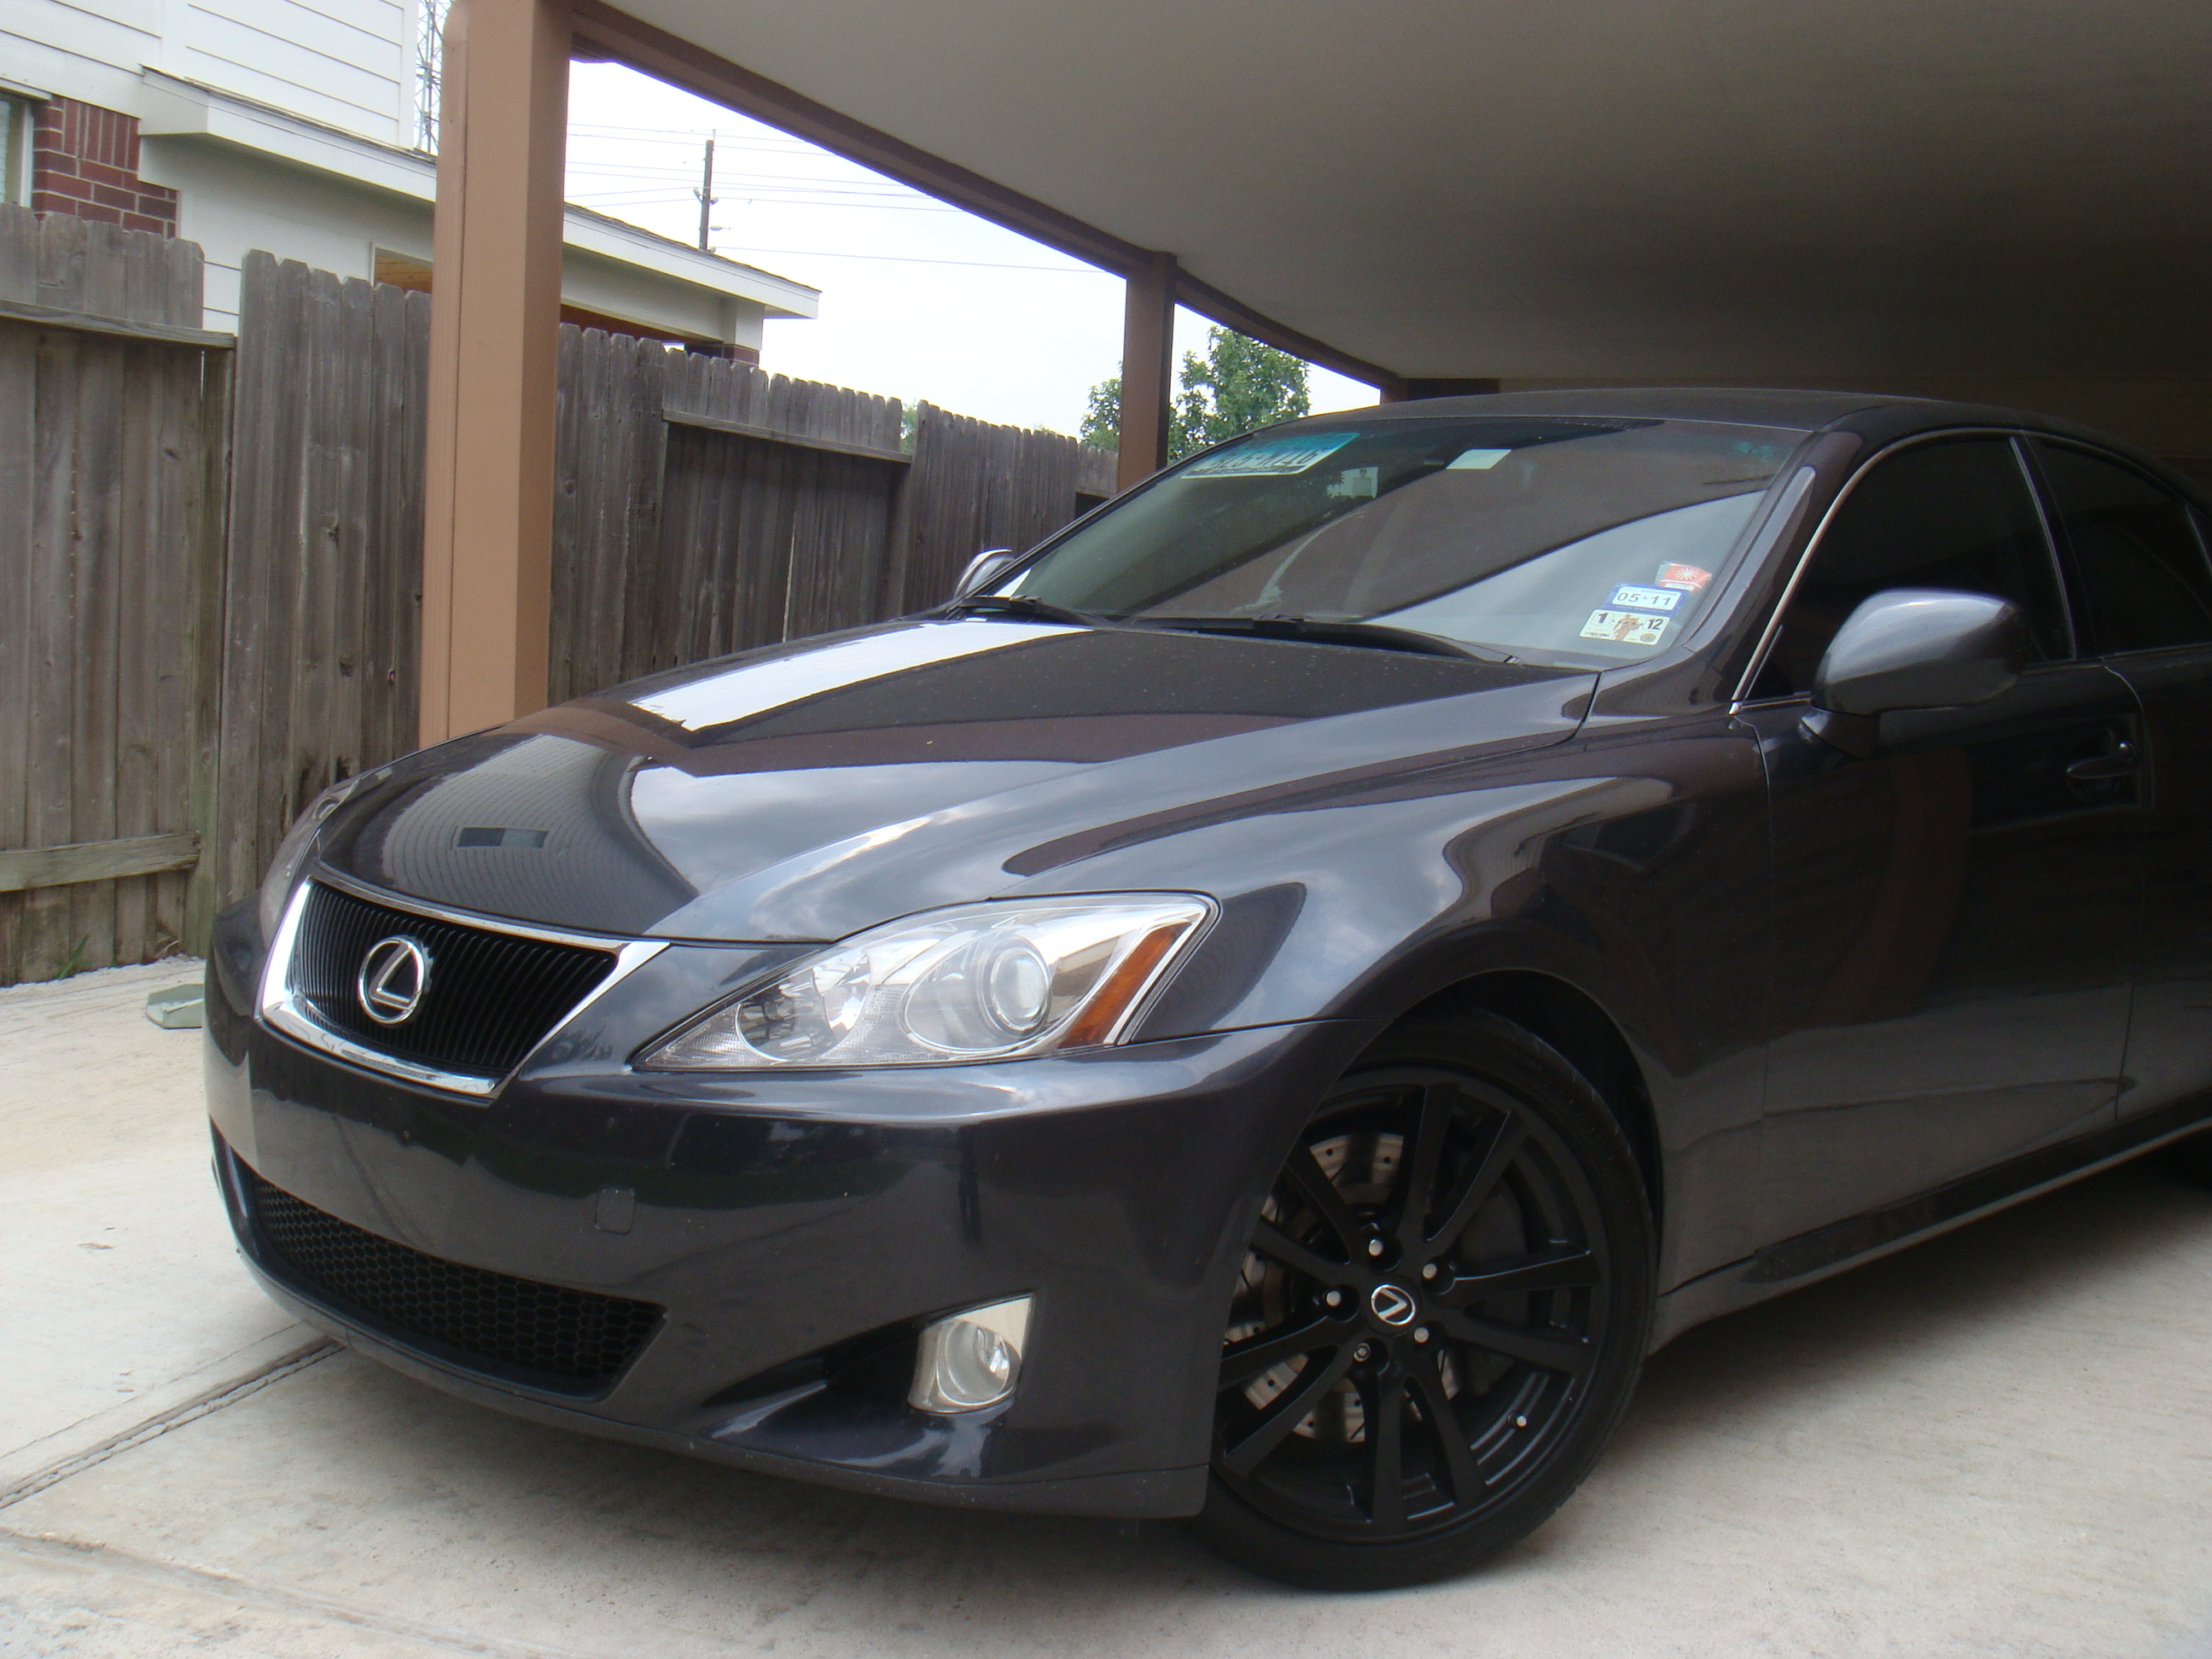 2008 Lexus Is 350 #12